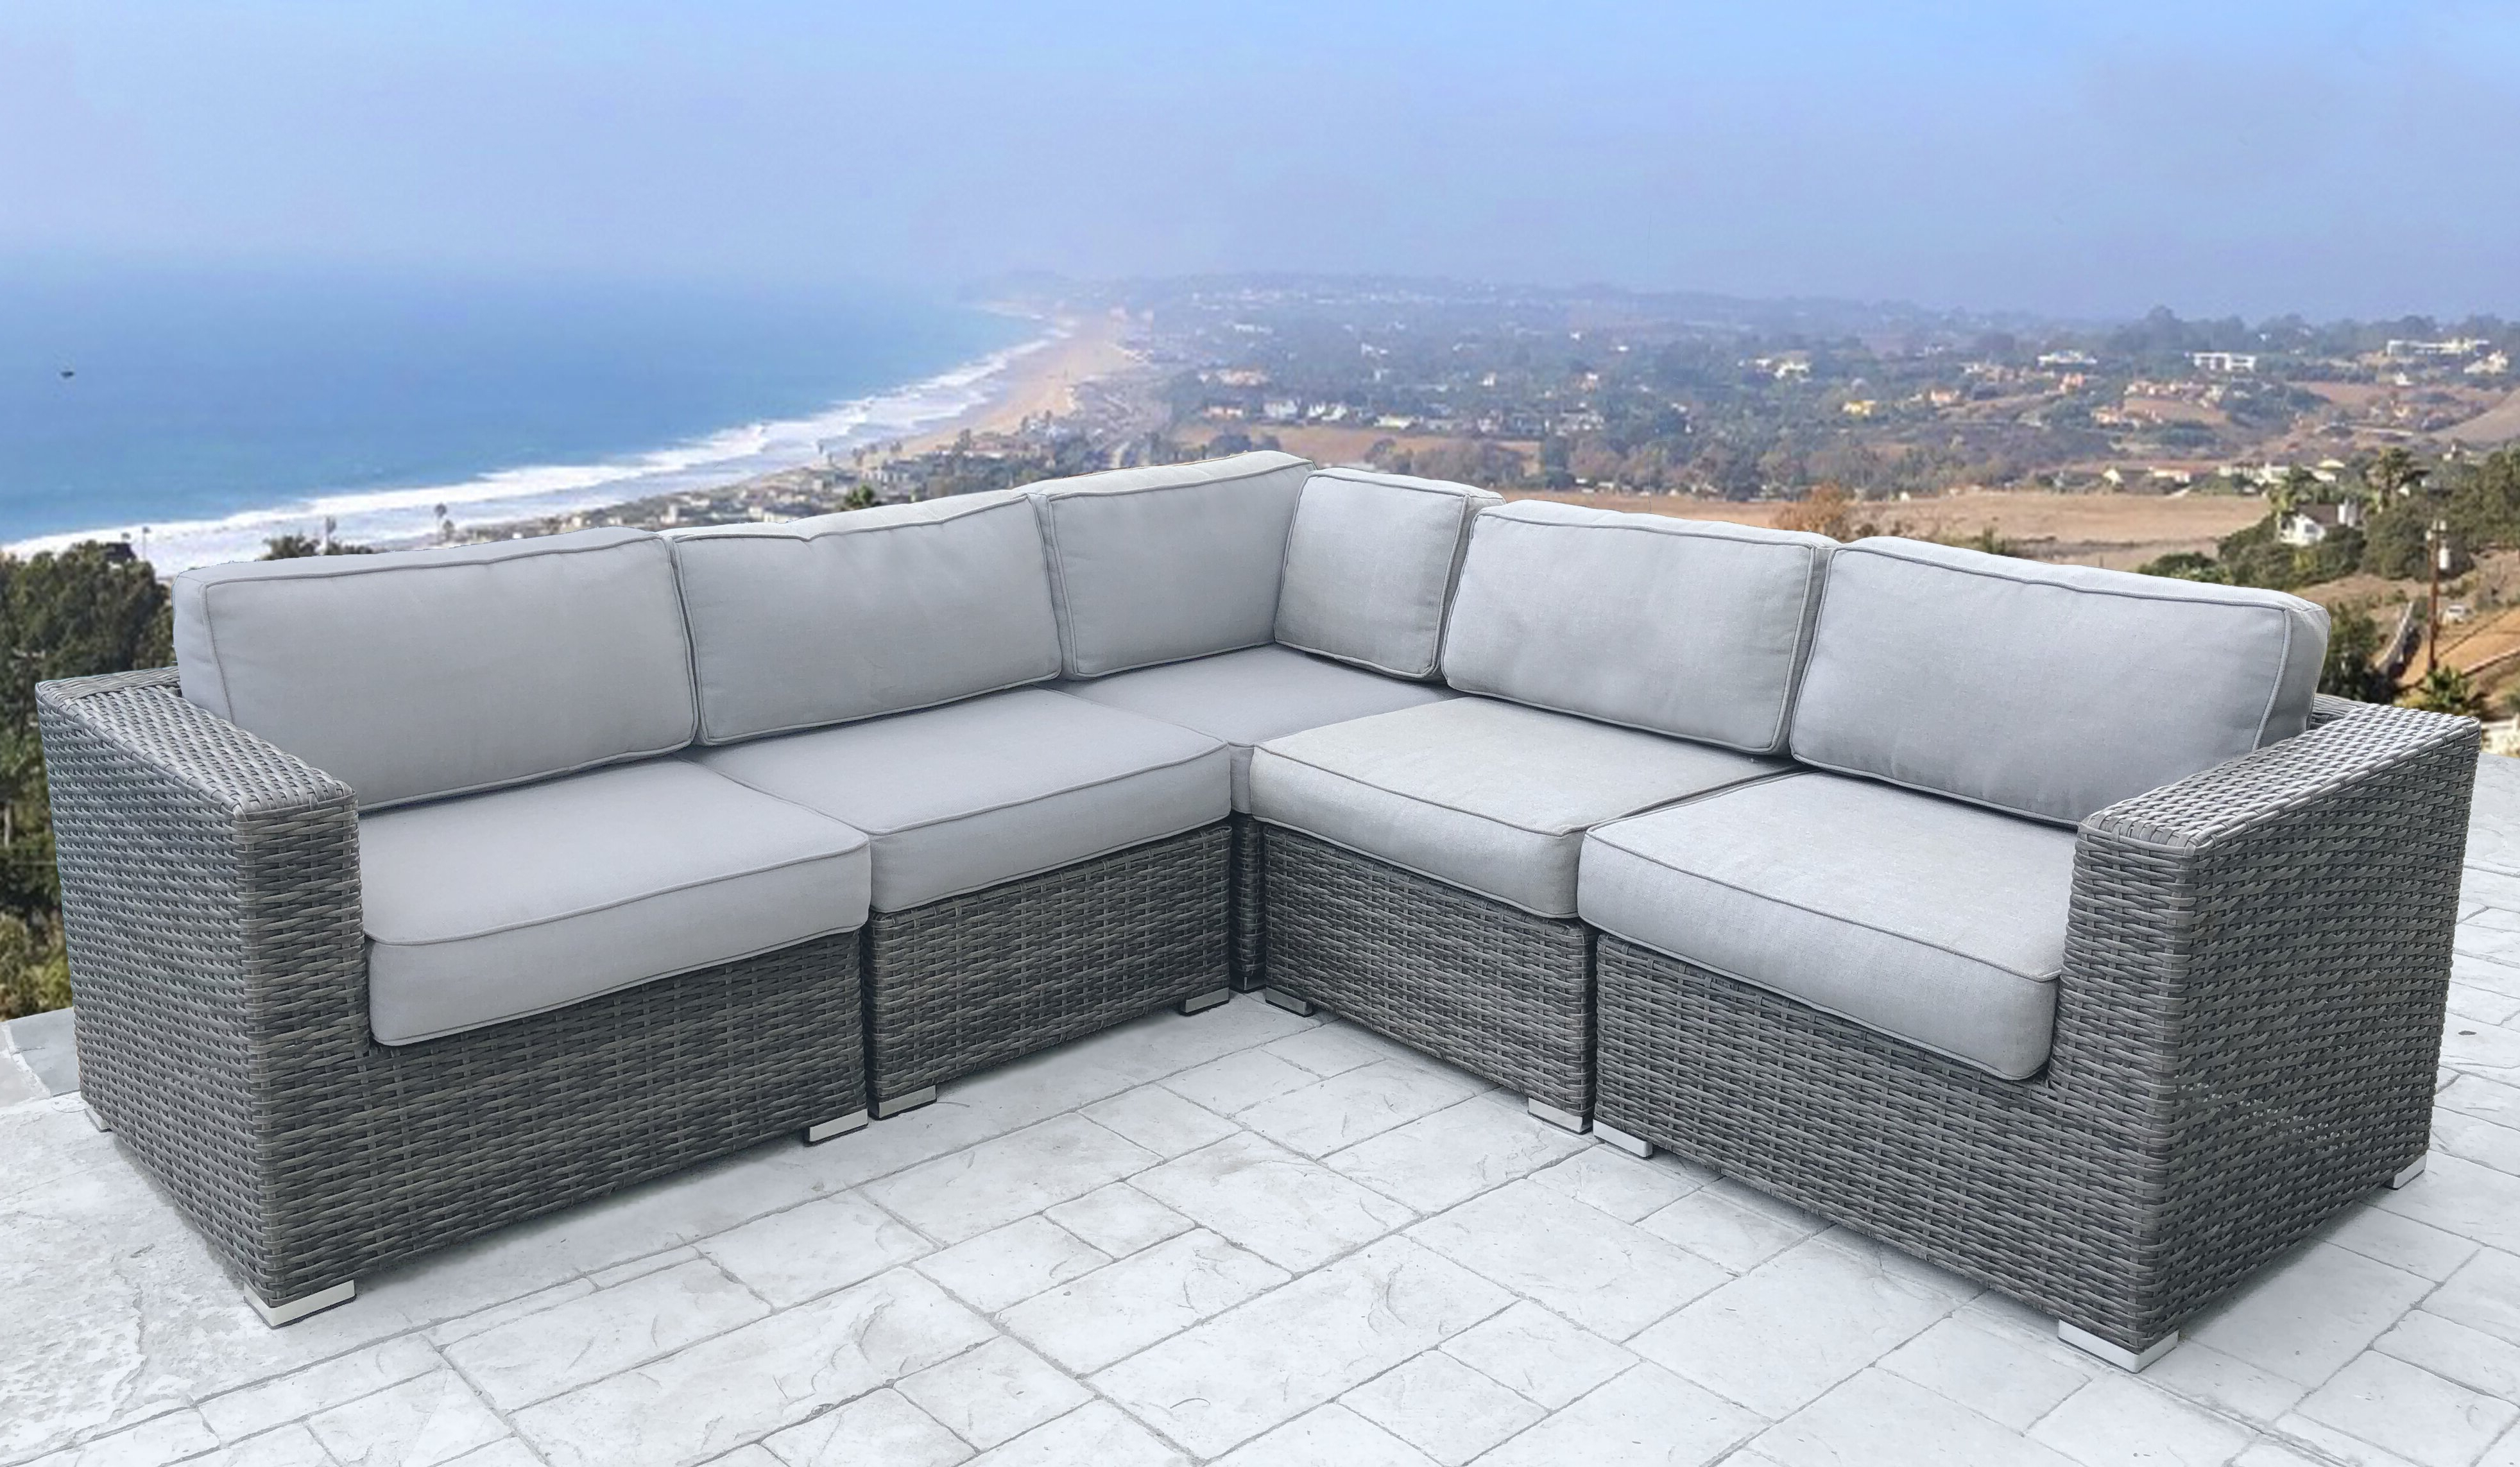 Purington Circular Patio Sectionals With Cushions Intended For Recent Nolen Patio Sectional With Cushions (View 6 of 20)